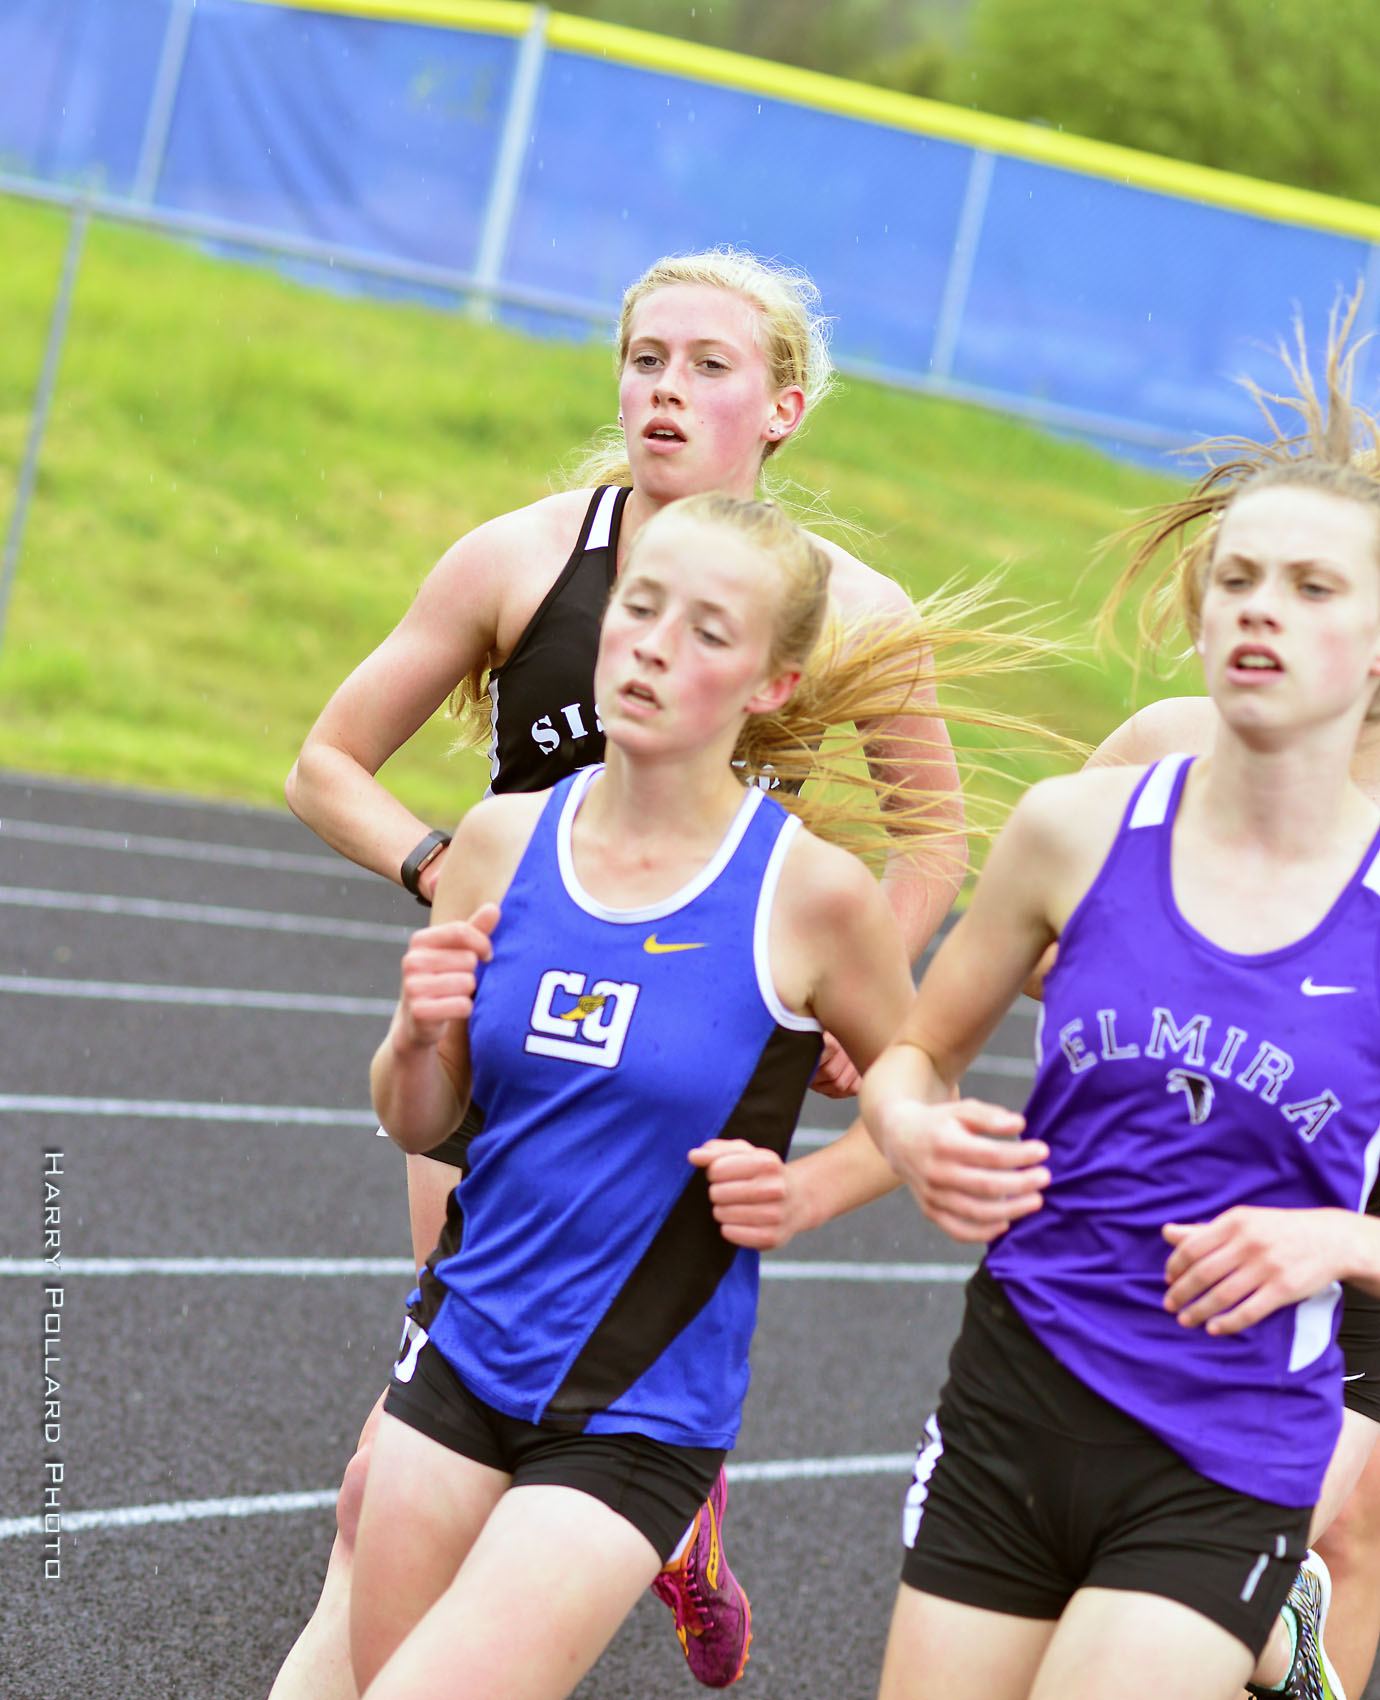 2017-05-11-sky-em-district-track-meet-03